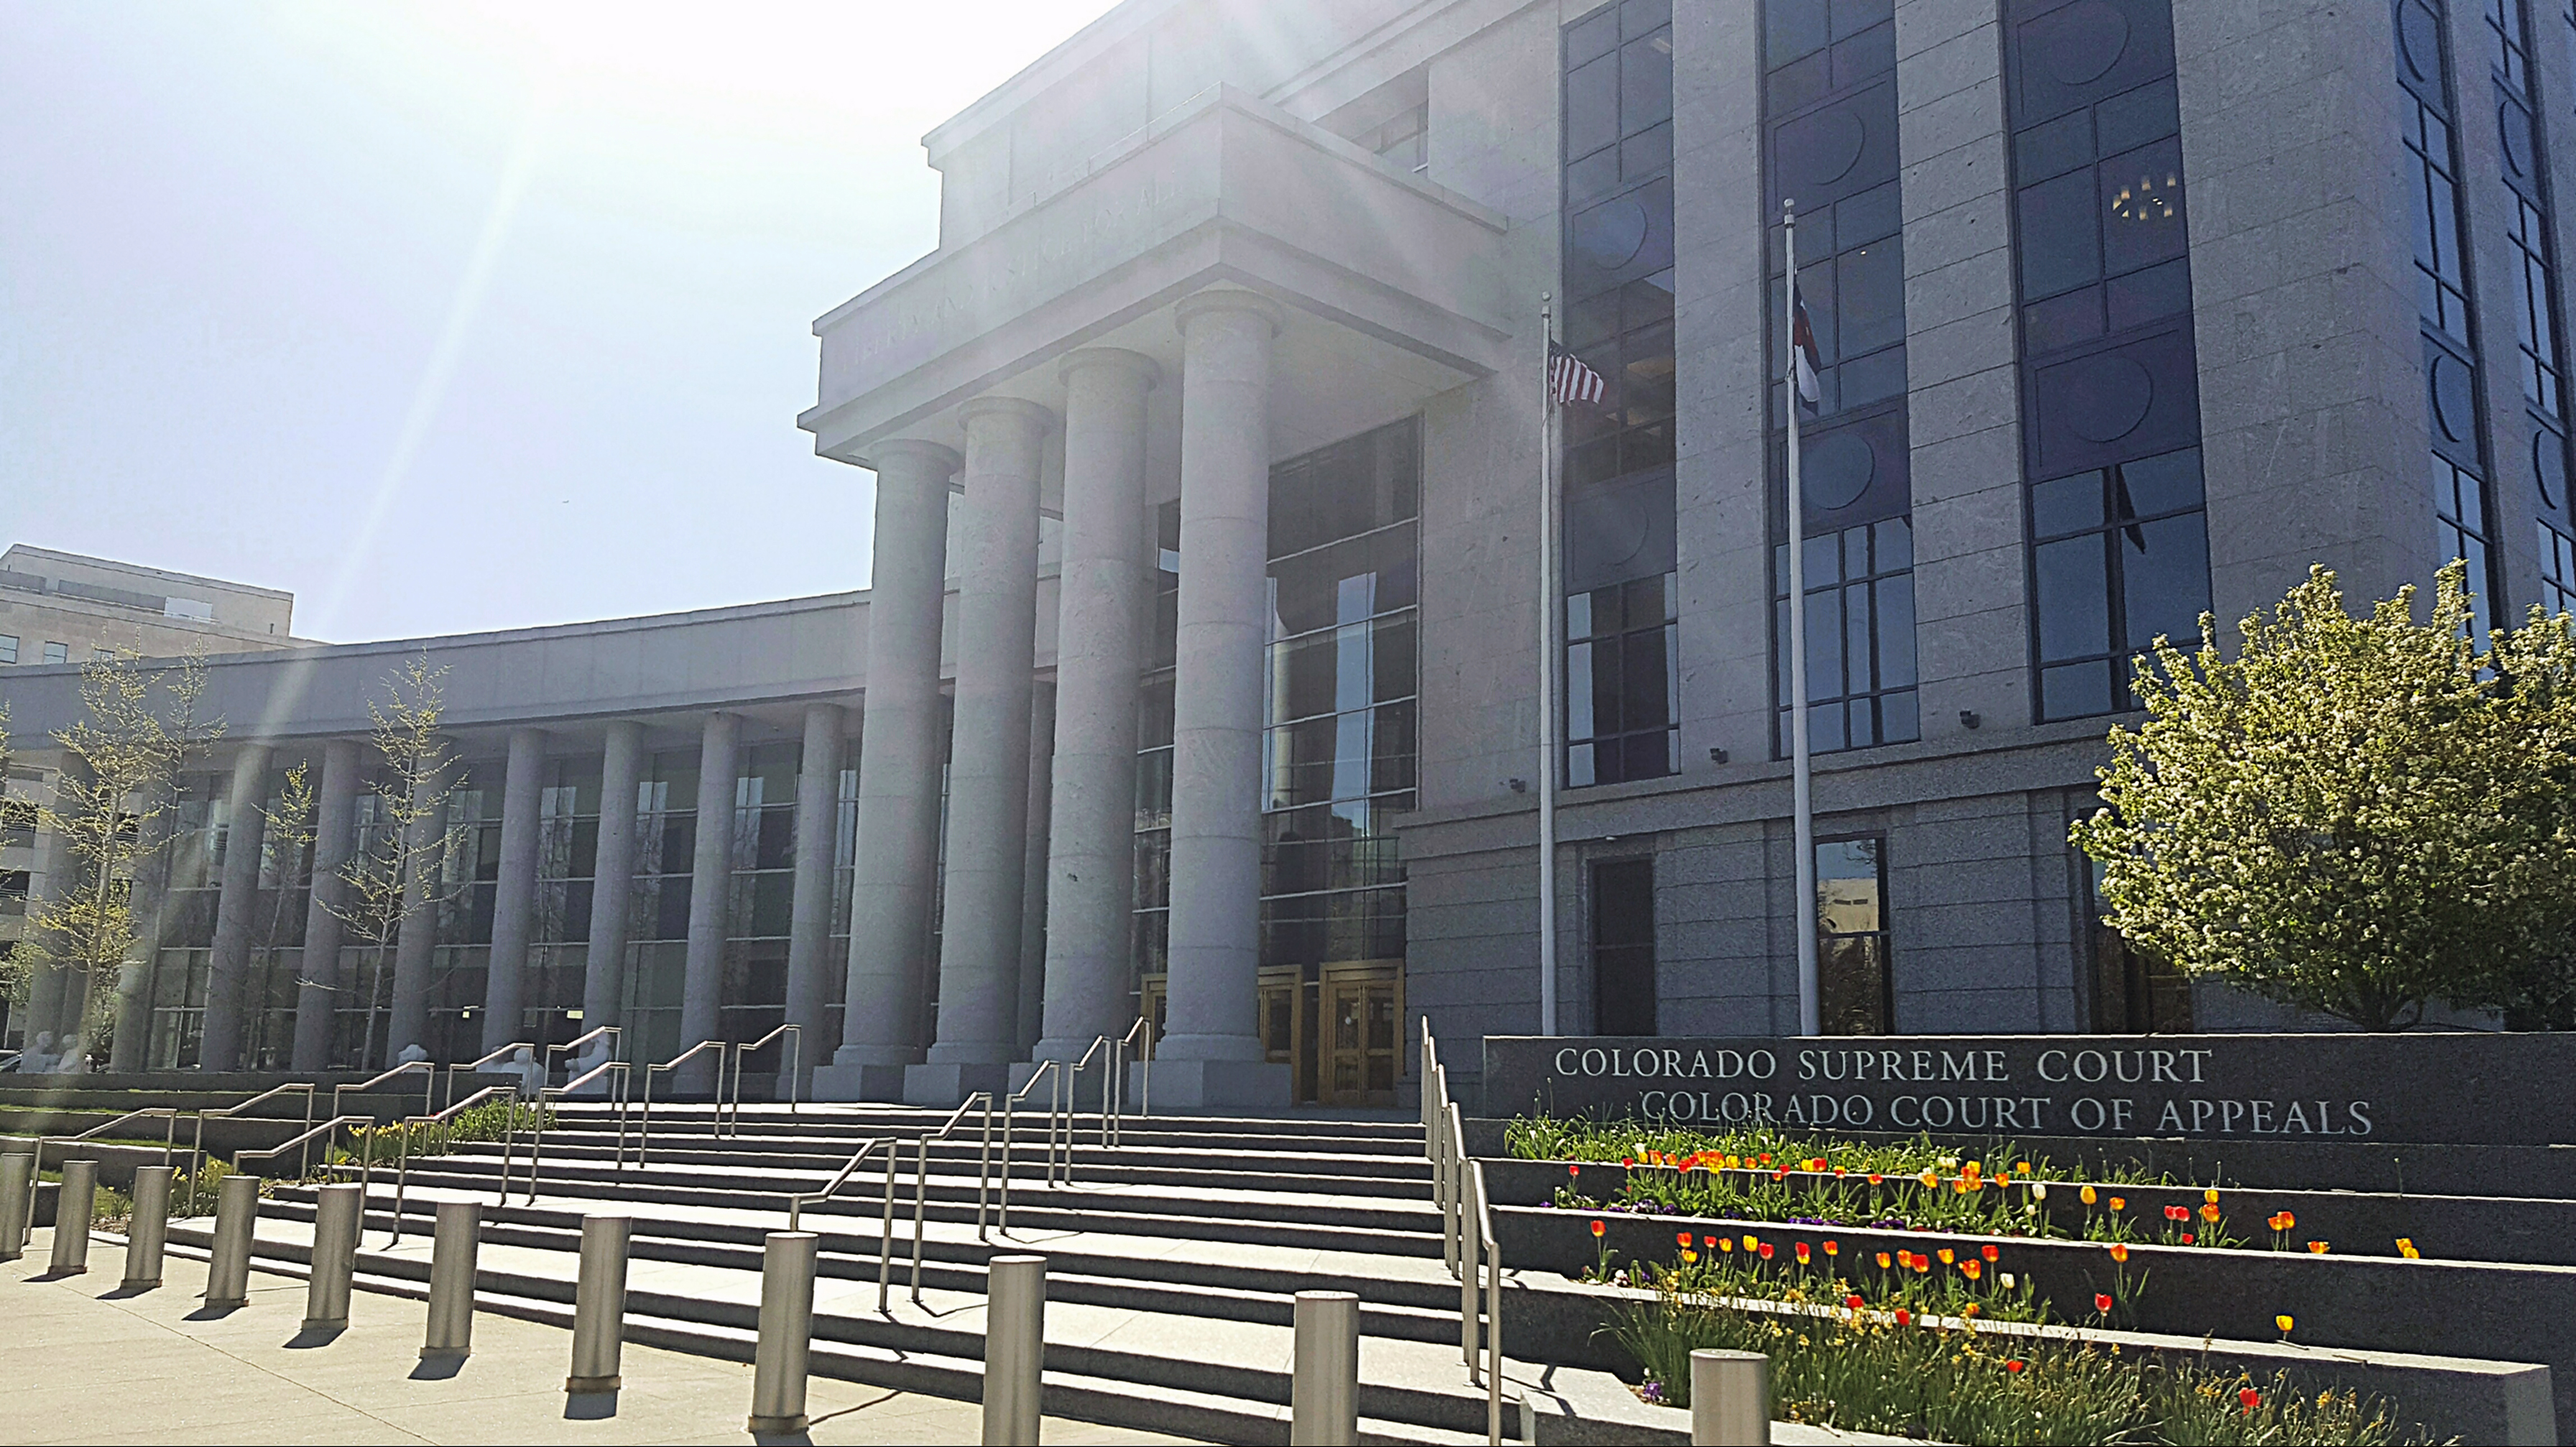 Front entrance of the Colorado Supreme Court and Court of Appeals Courthouse in Denver Colorado